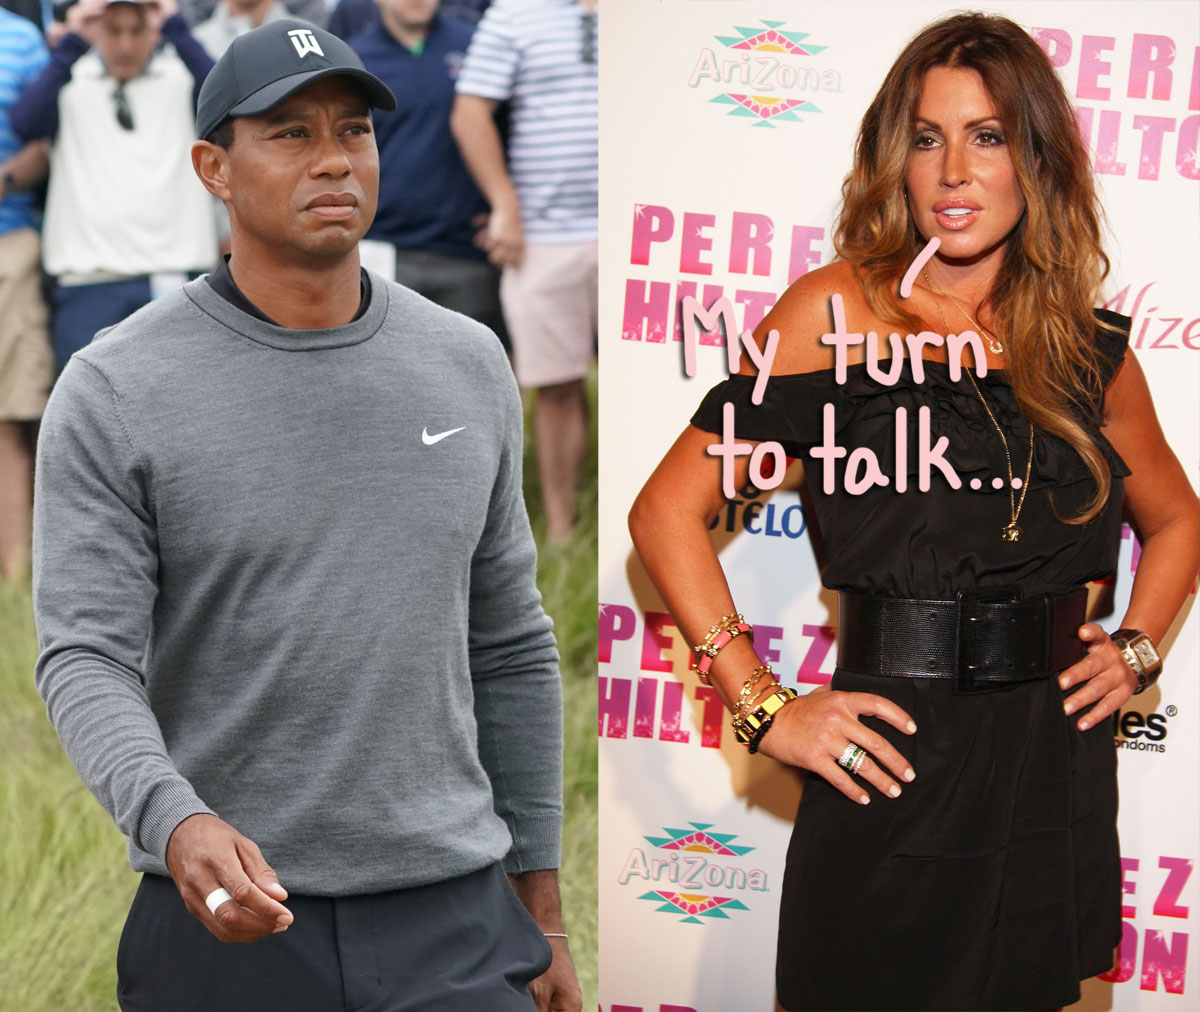 Tiger Woods' Mistress Reveals His Last Text To Her In Upcoming Tell-All Documentary, And HOO BOY!